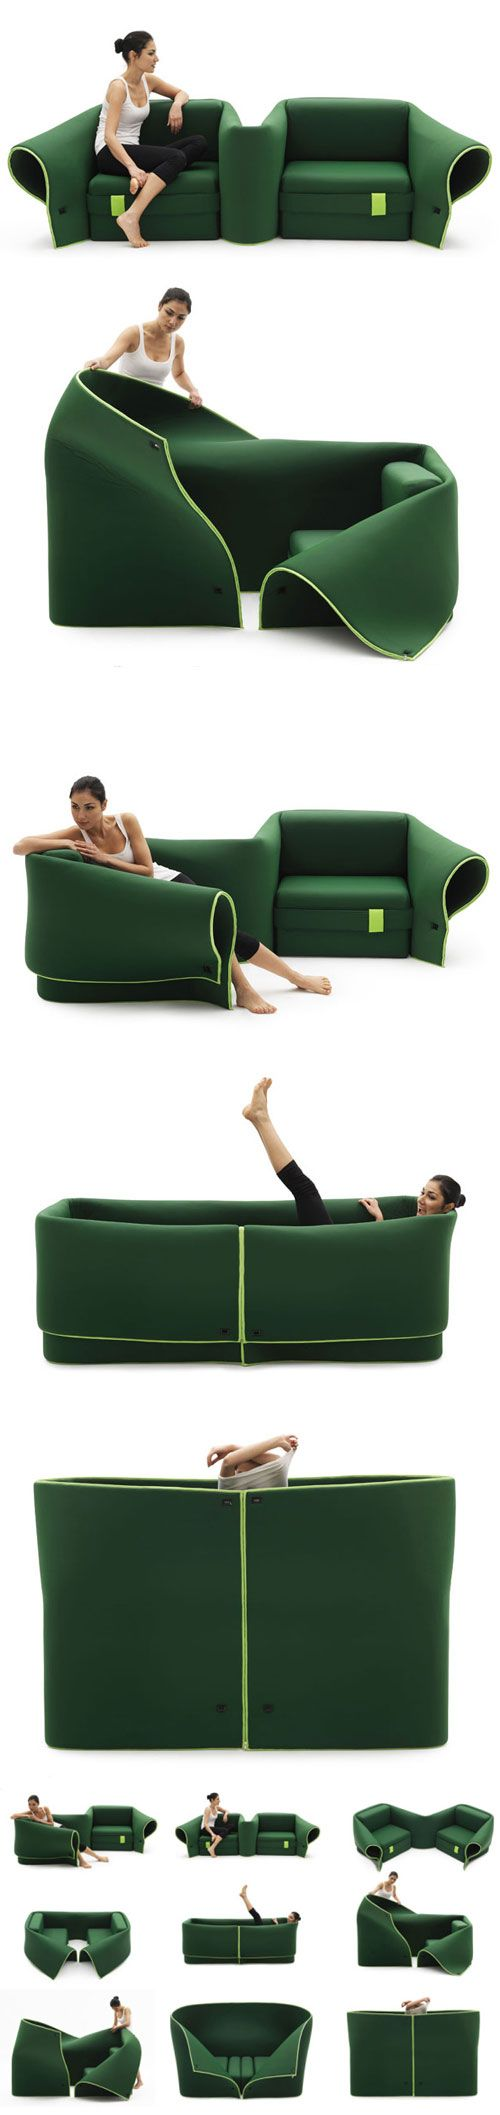 creative-sofa-couch-design Home Page: http://www.campeggisrl.it/en/products